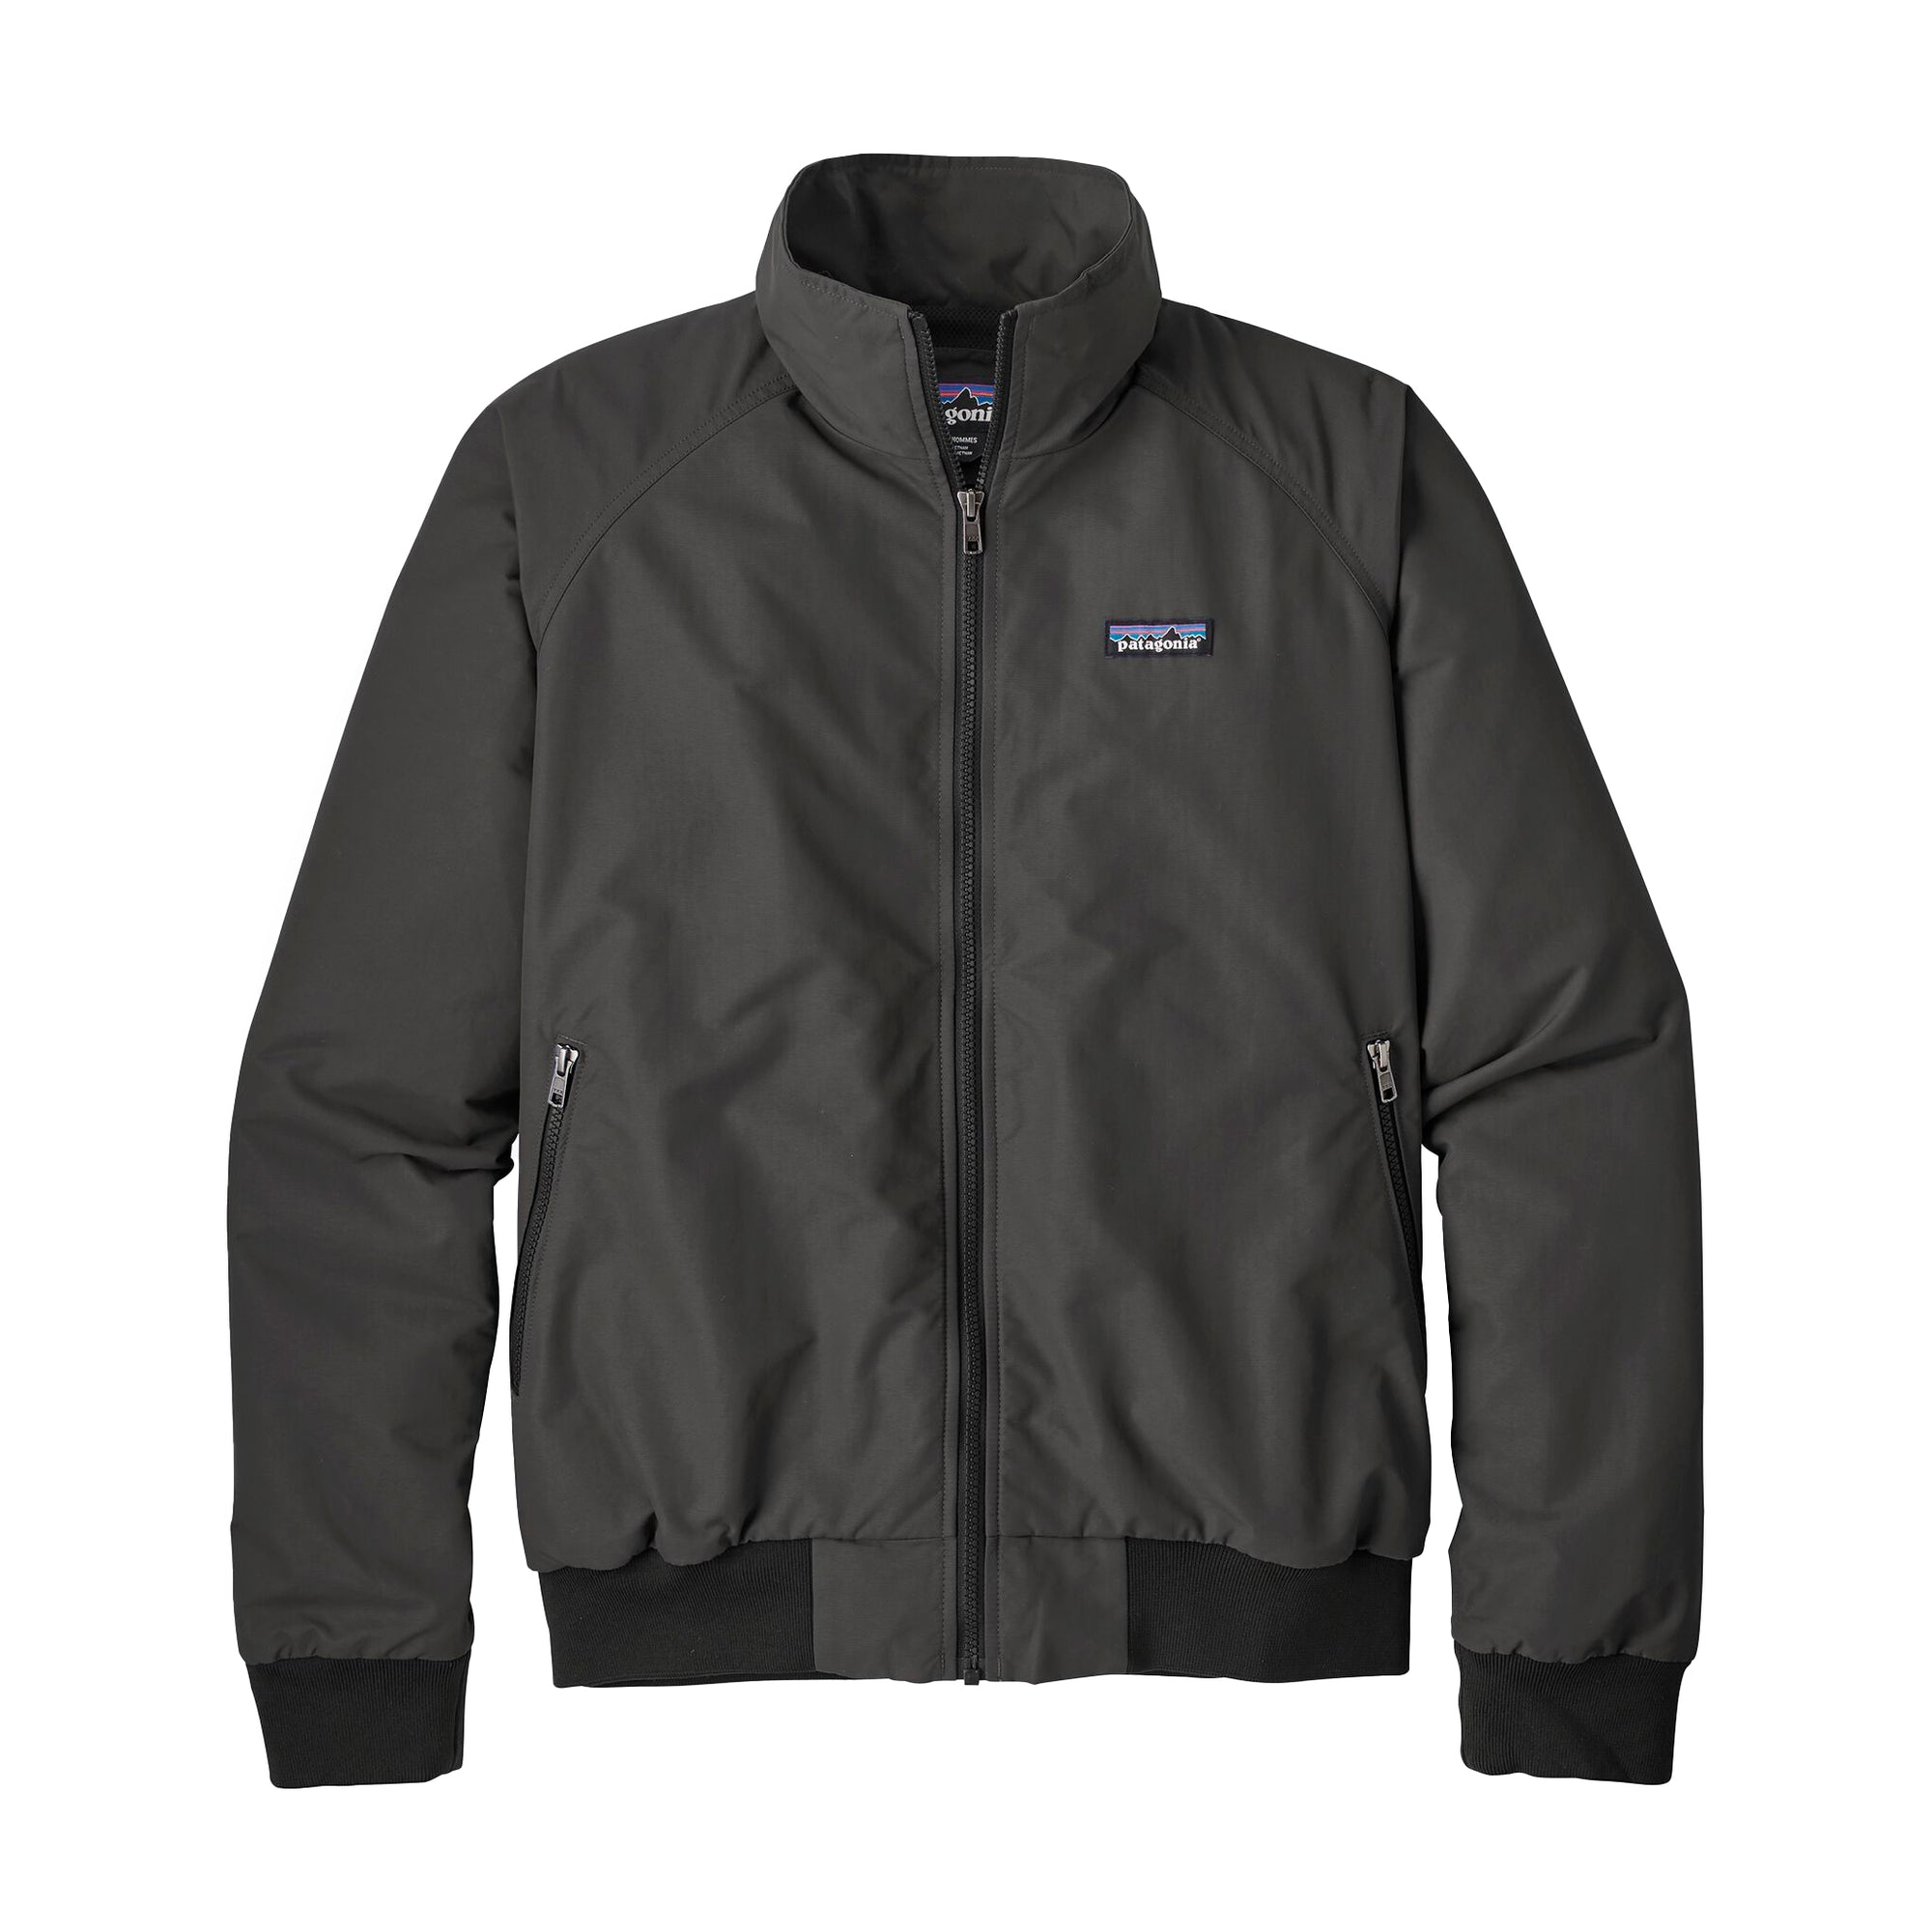 Patagonia Baggies Jacket: Ink Black - The Union Project